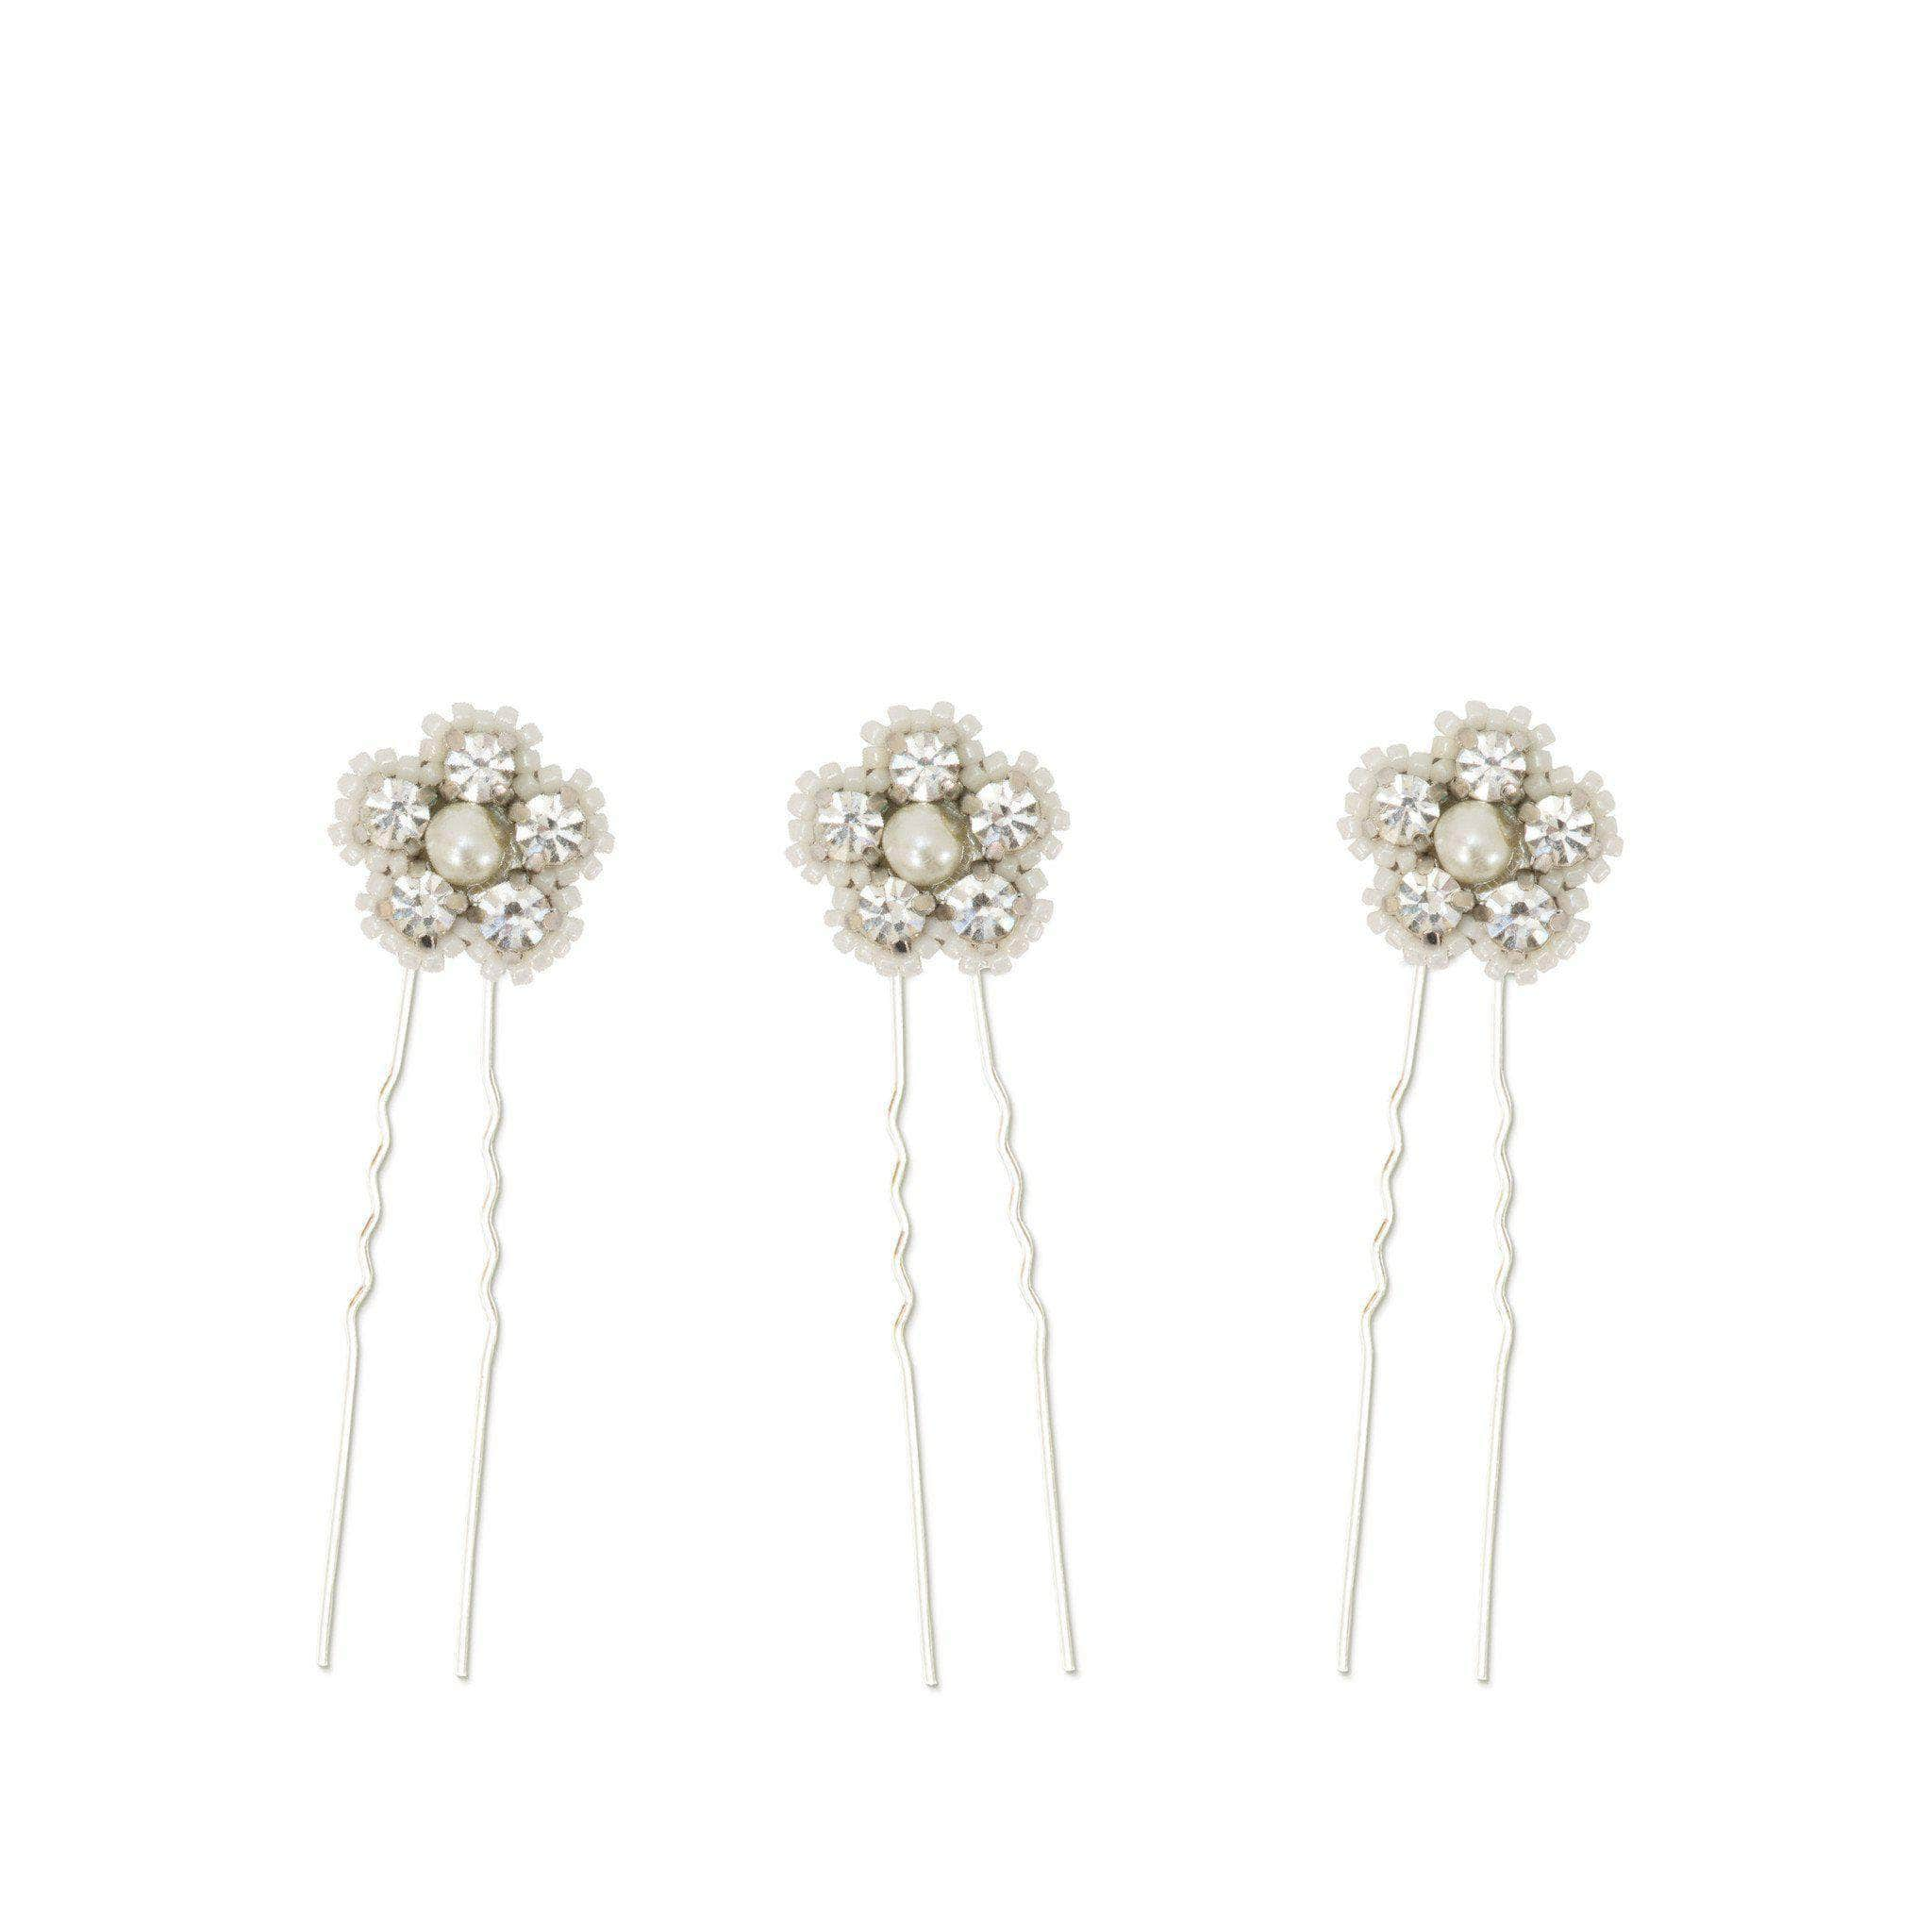 Ivory and silver flower wedding hair pins in crystal and pearl (x3) - 'Ema'